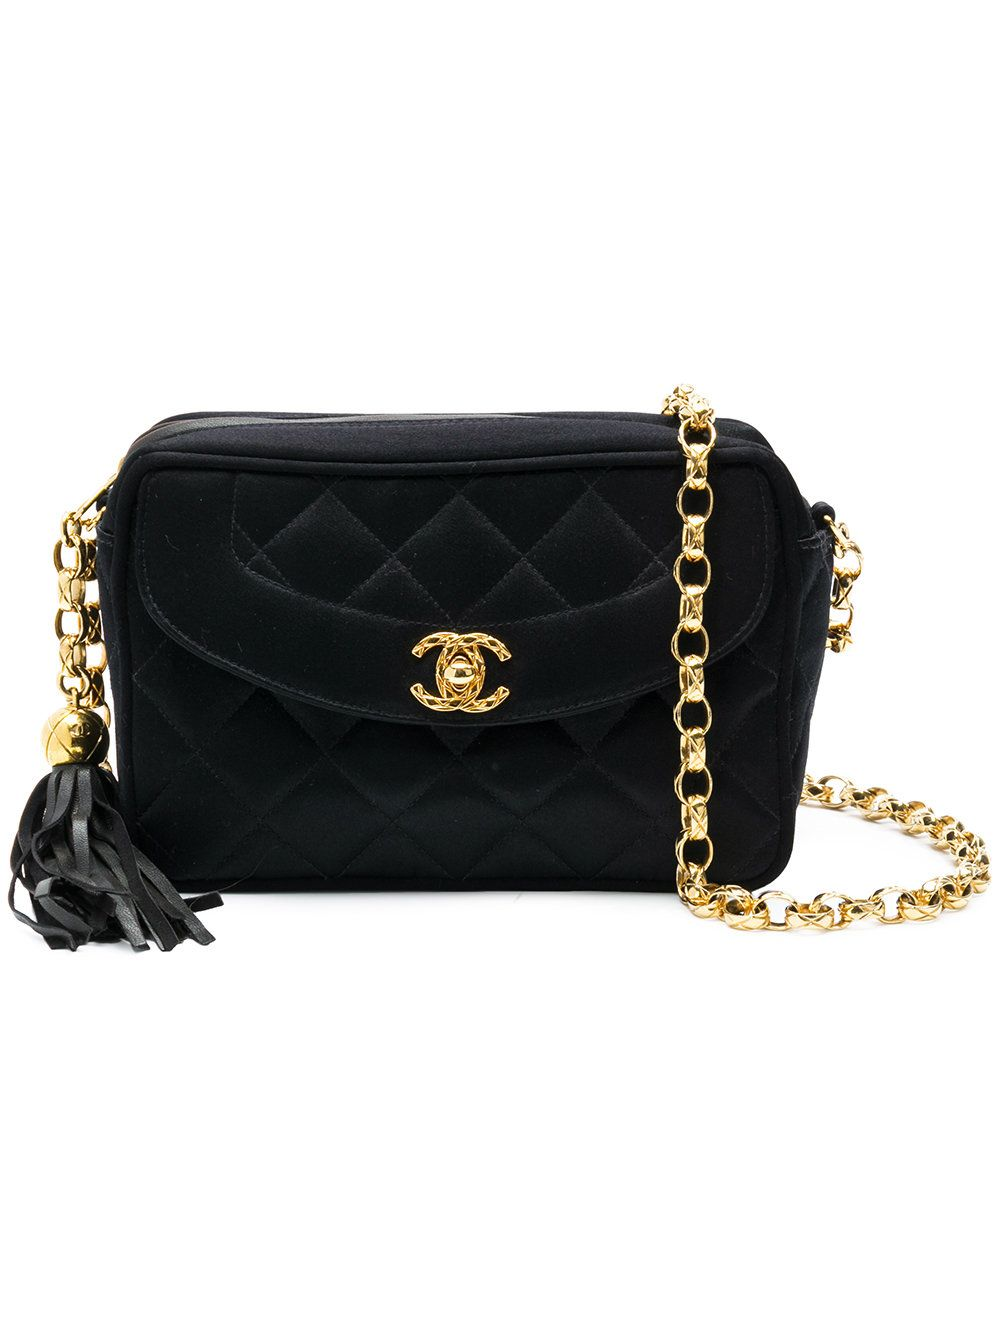 d89b1fbaf95b23 Chanel Vintage diamond quilted camera bag | Vintage bags in 2019 ...